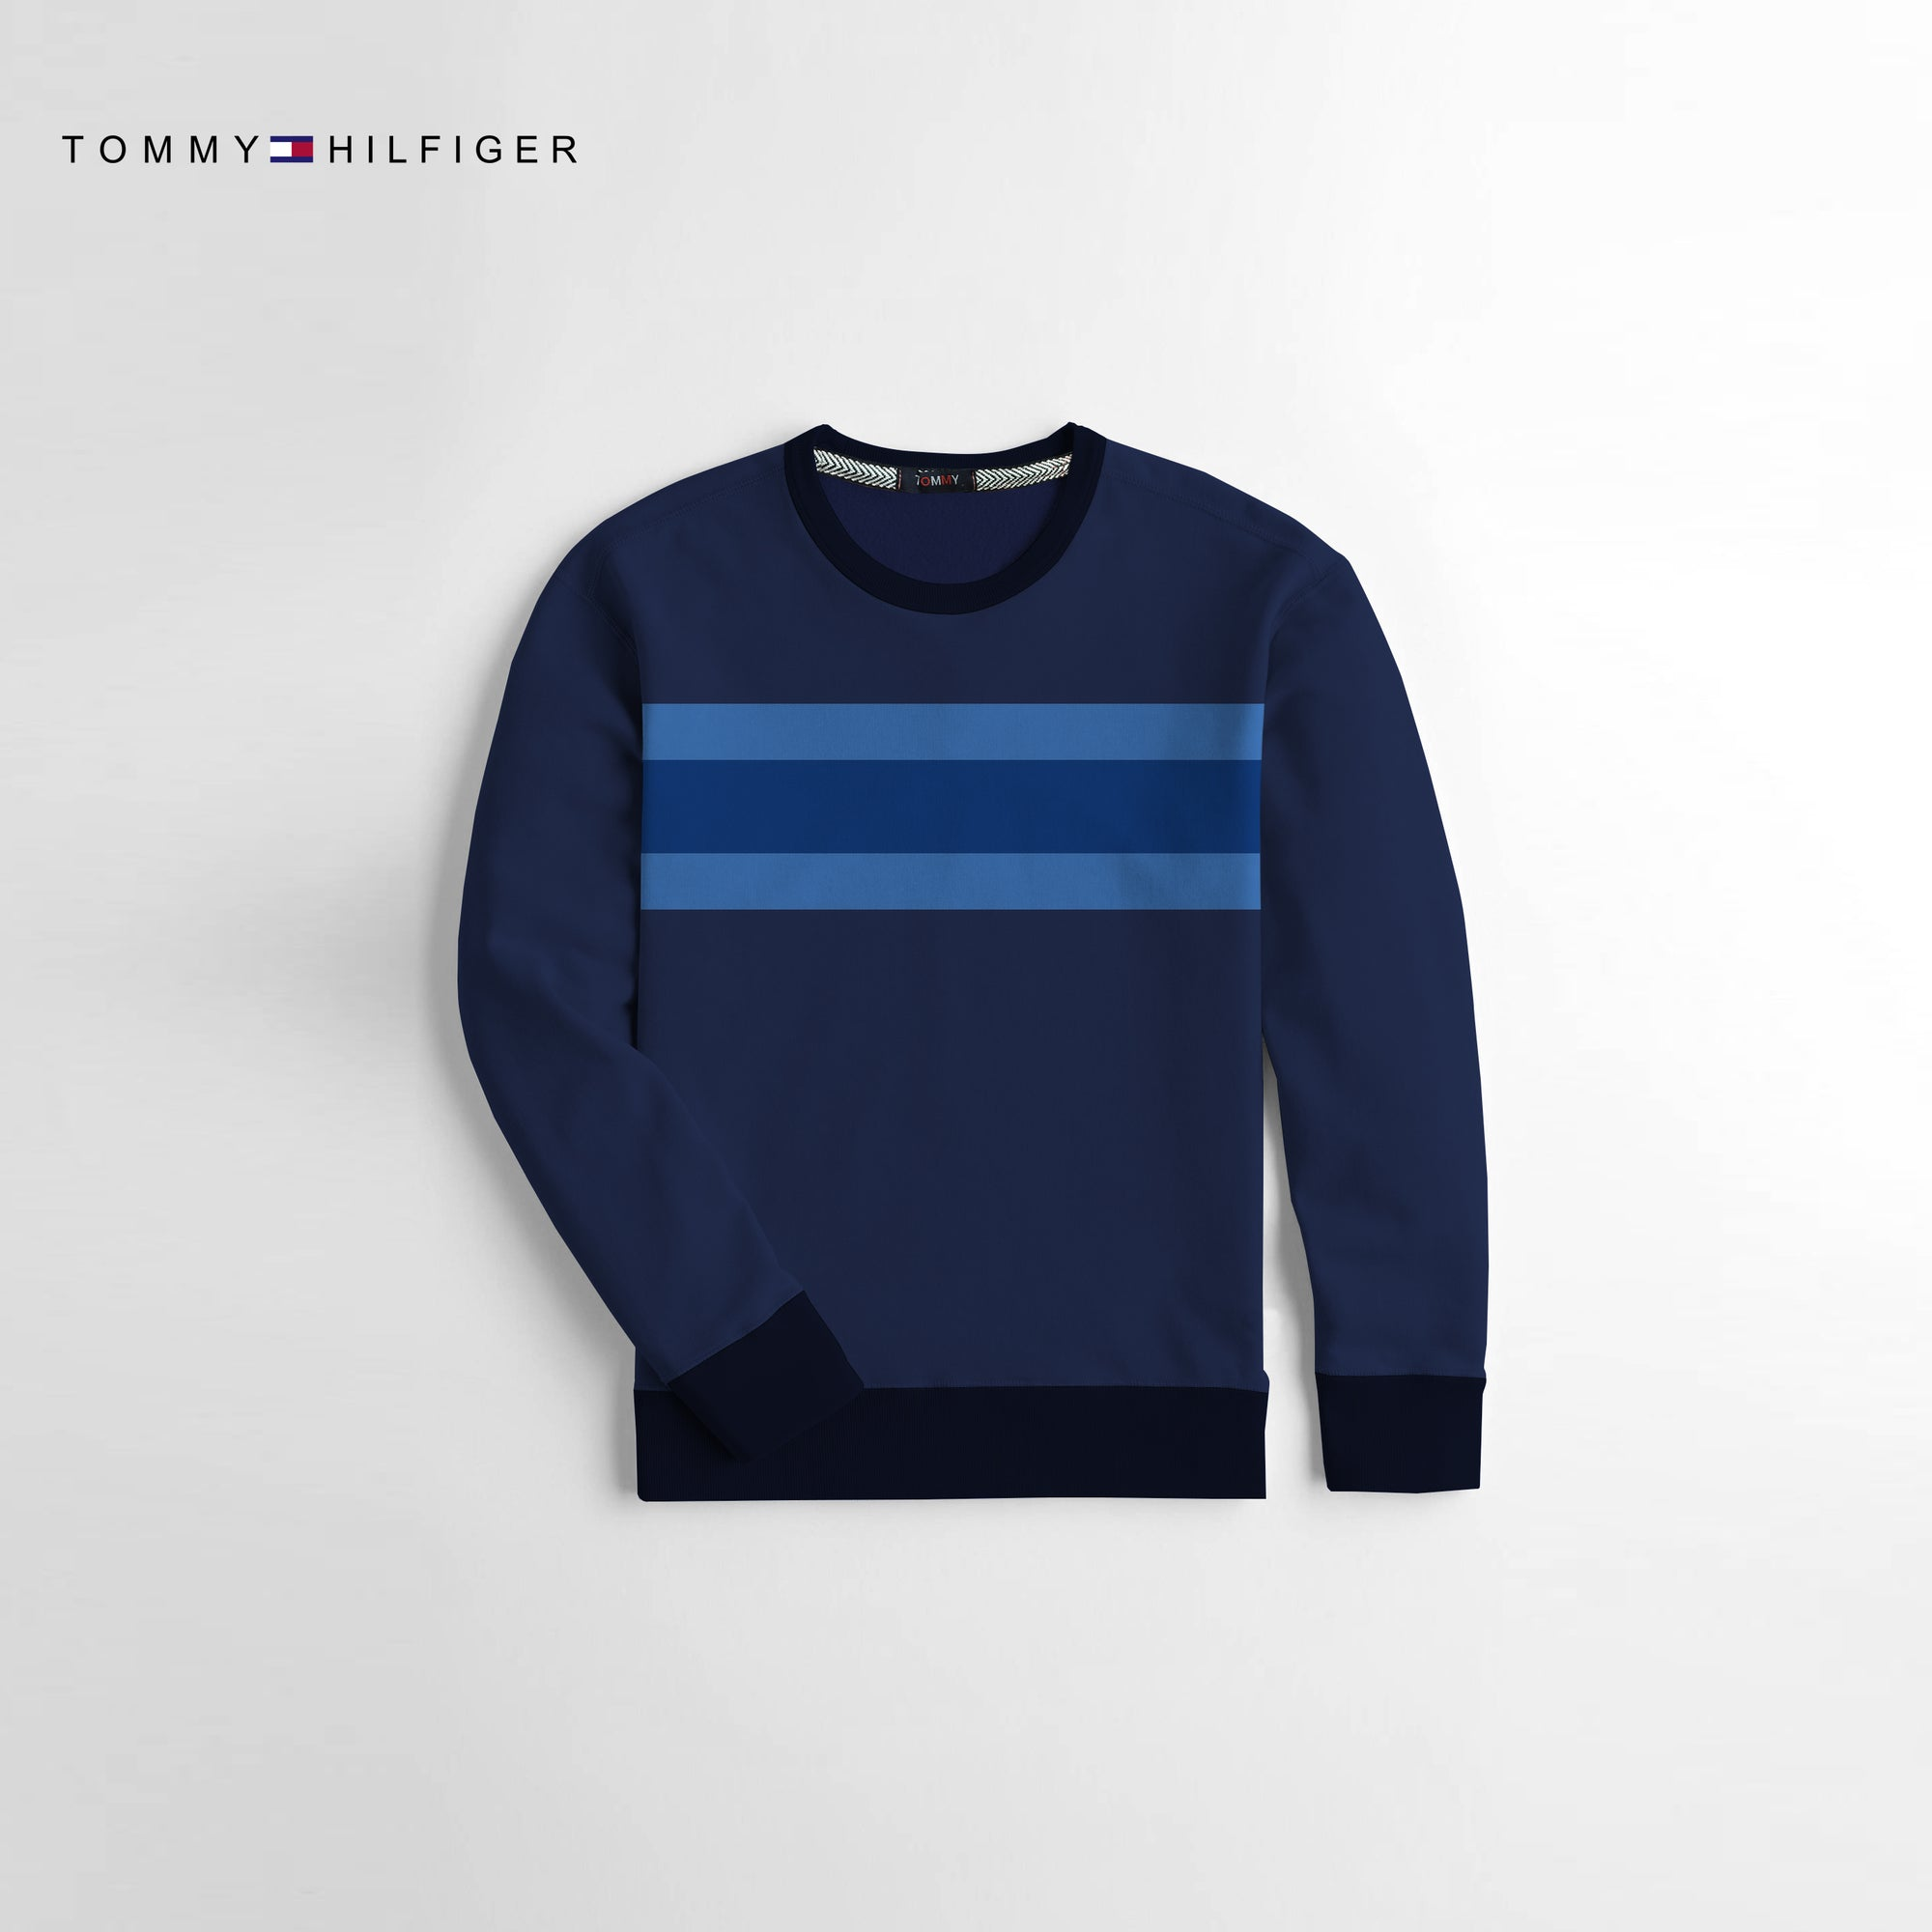 Tommy Hilfiger Crew Neck Fleece Sweatshirt For Kids-Dark Navy With Striper-NA10667